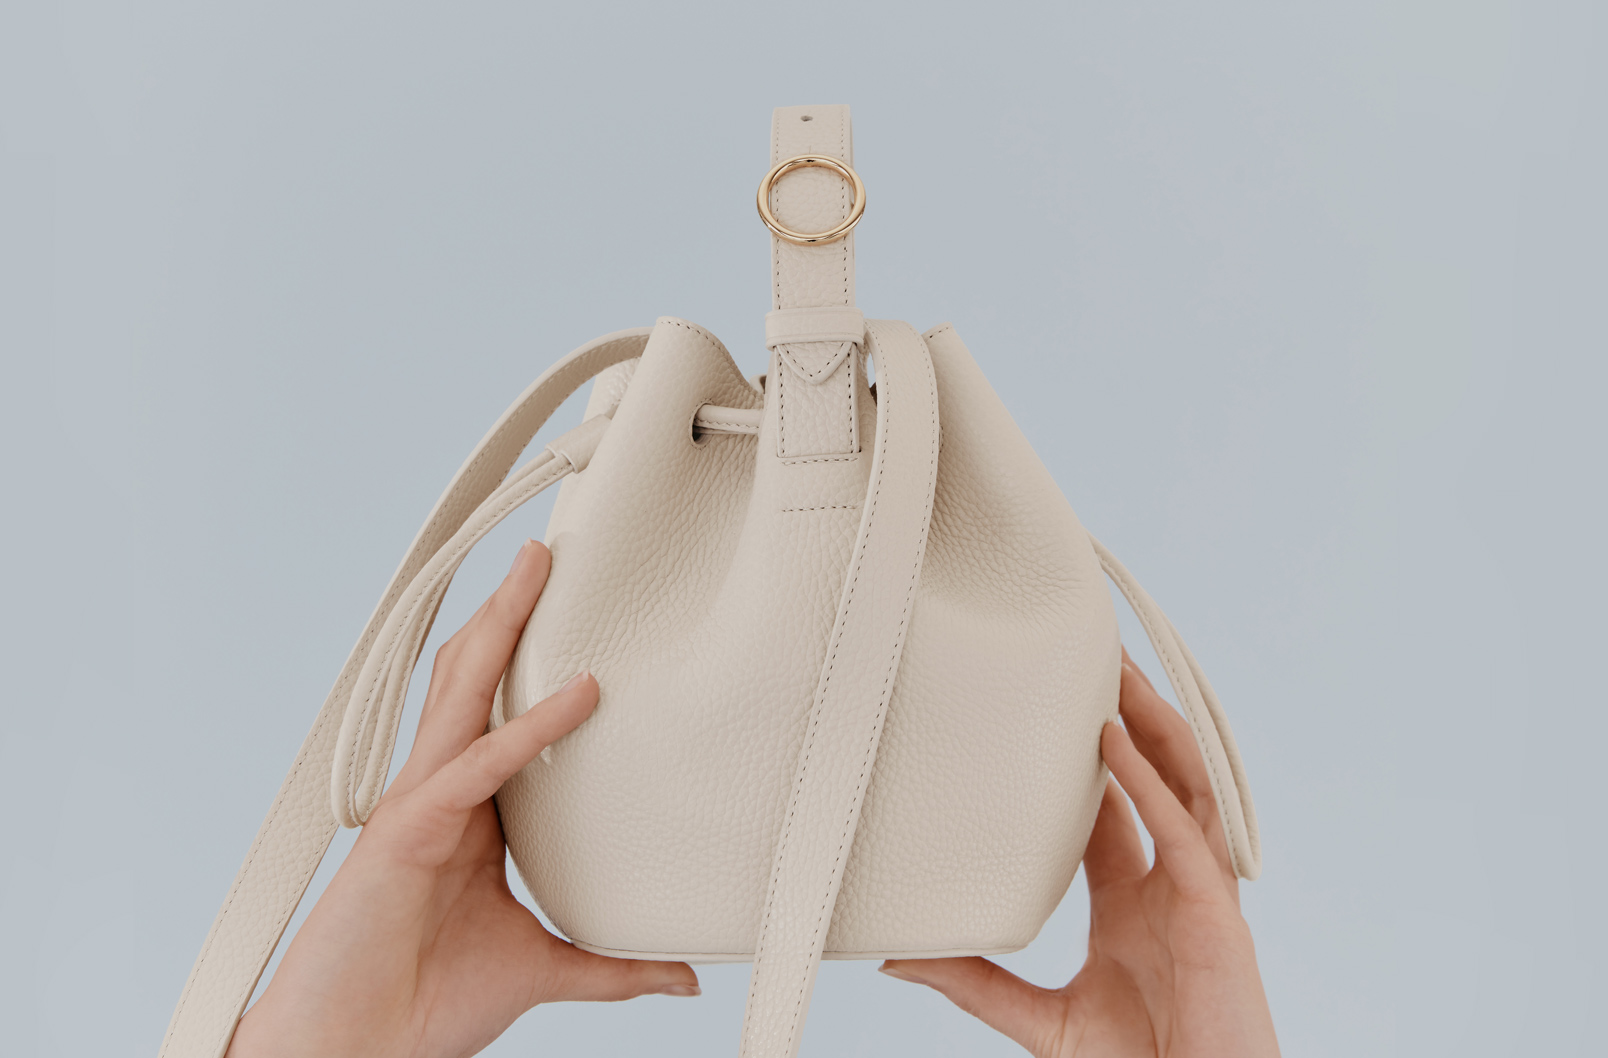 Cuyana Mini Drawstring Bucket Bag in Ecru held in air